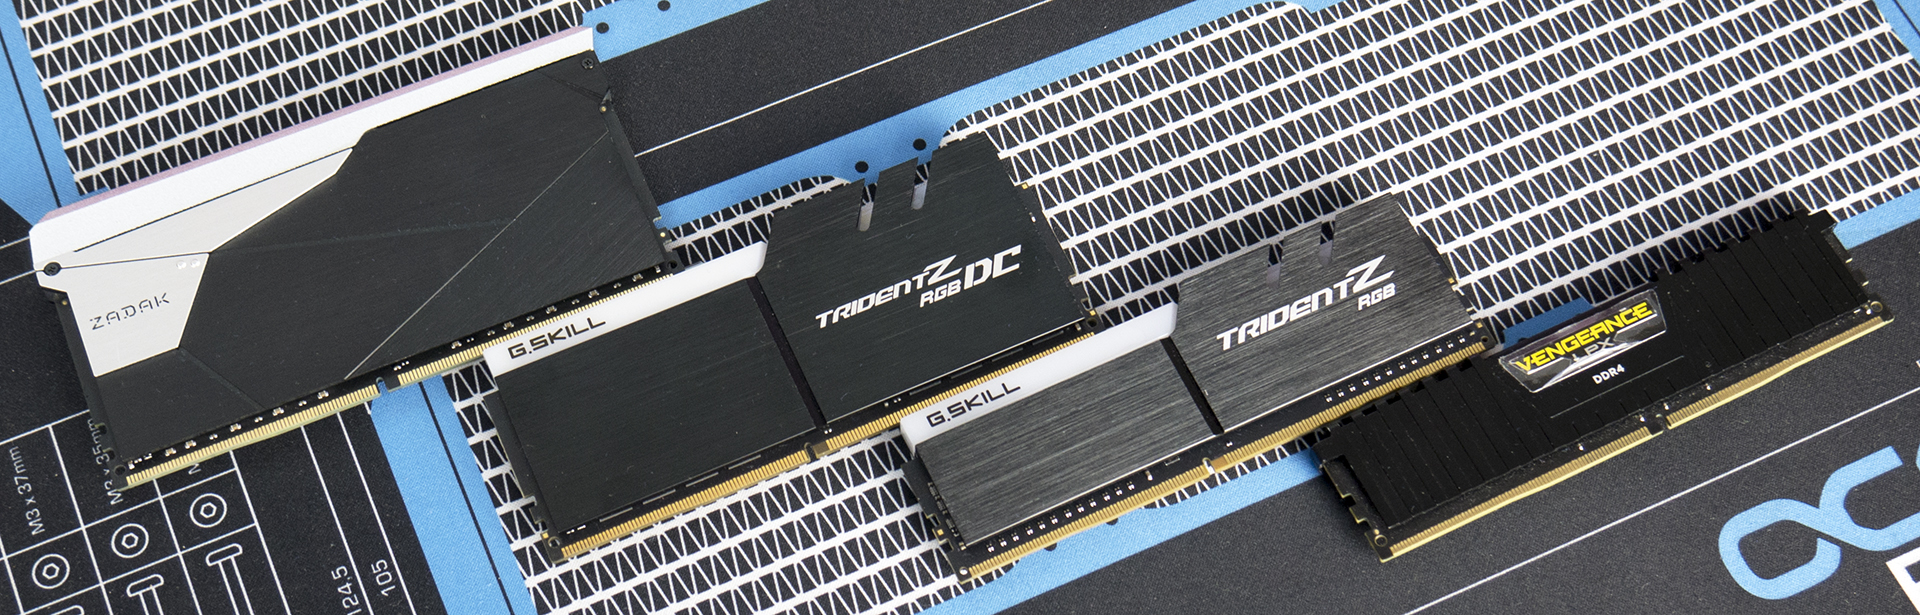 Double Height DDR4: 32GB Modules from G Skill and ZADAK Reviewed